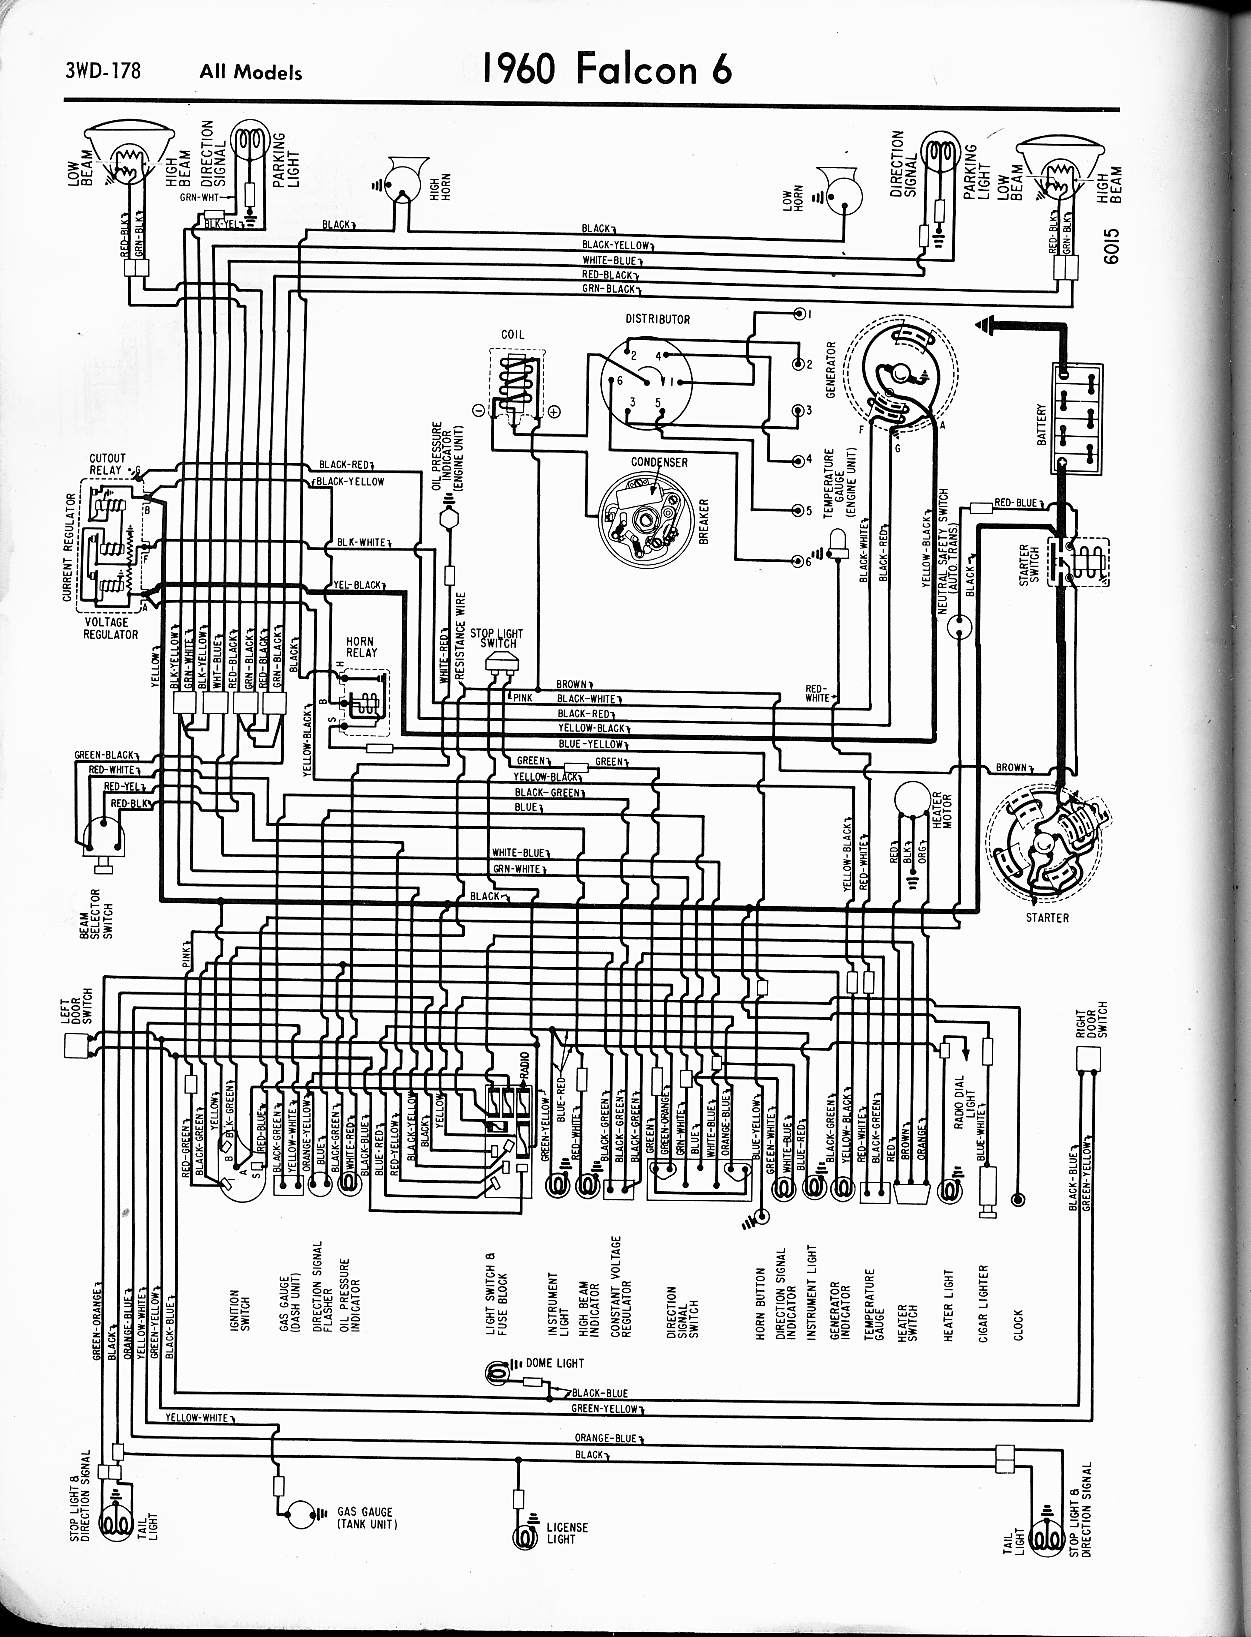 1960 ford falcon wiring diagram wiring diagram u2022 rh ebode co 1964 Falcon Wiring-Diagram 1964 Falcon Wiring-Diagram